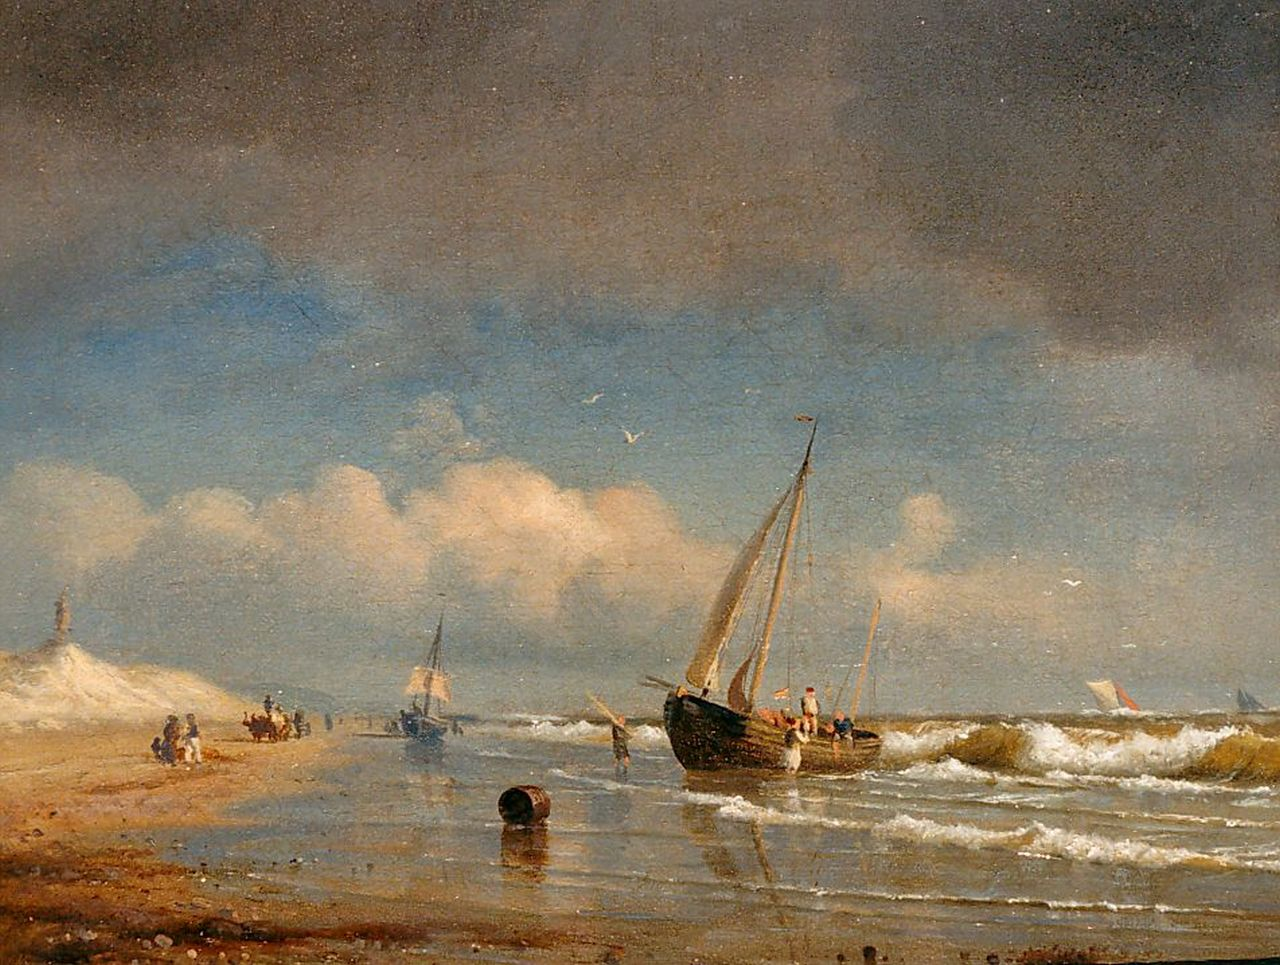 Kummer C.R.  | Carl-Robert Kummer, Vessels along the coast, oil on canvas 19.2 x 23.9 cm, signed l.l. and dated 1854